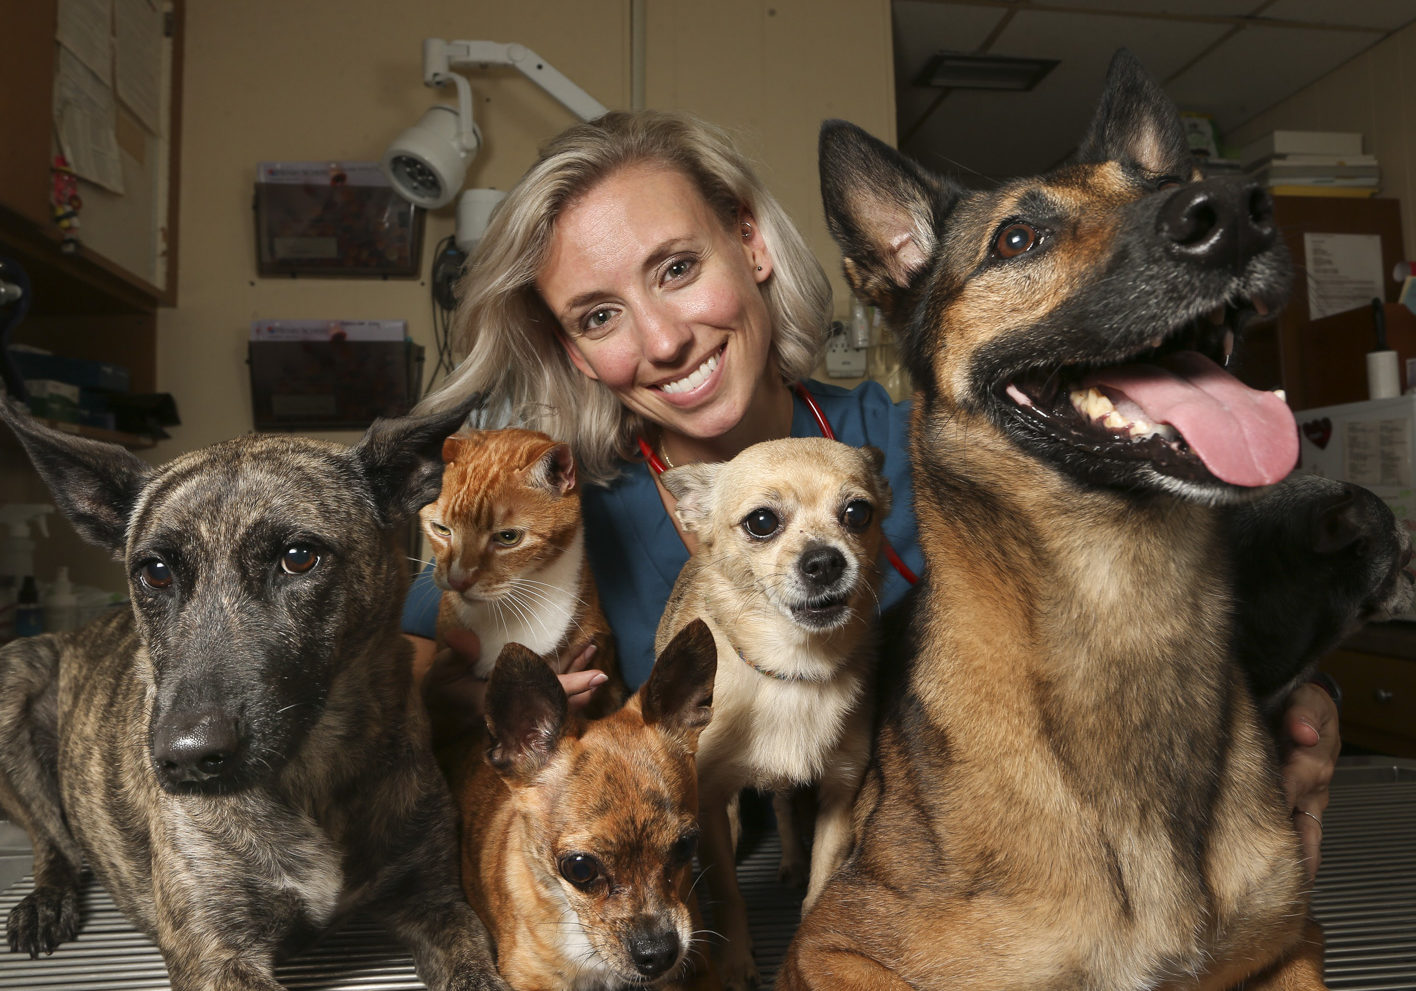 """I really wanted to be a Vet since I was five,"" Joci Forkner said. ""I've always loved animals and I really like science."" Joci Forkner, DVM, pictured with a handful of her eight pets in the treatment room at the Animal Hospital of Treasure Island, 155 108th Ave, on Tuesday, July 30, 2019 in Treasure Island. Joci has been a veterinarian since 2011 and is the co-ower of the Animal Hospital of Treasure Island. From left is Bindi, Brady (cat), Shrimp, Scampi, and Gillie. Joci says her favorite part about treating pets are when you finally turn a corner and you know that they are feeling better. ""Building relationships with the patients and the owners,"" Joci says is also one of her favorite things. ""It can be very rewarding."" DIRK SHADD   